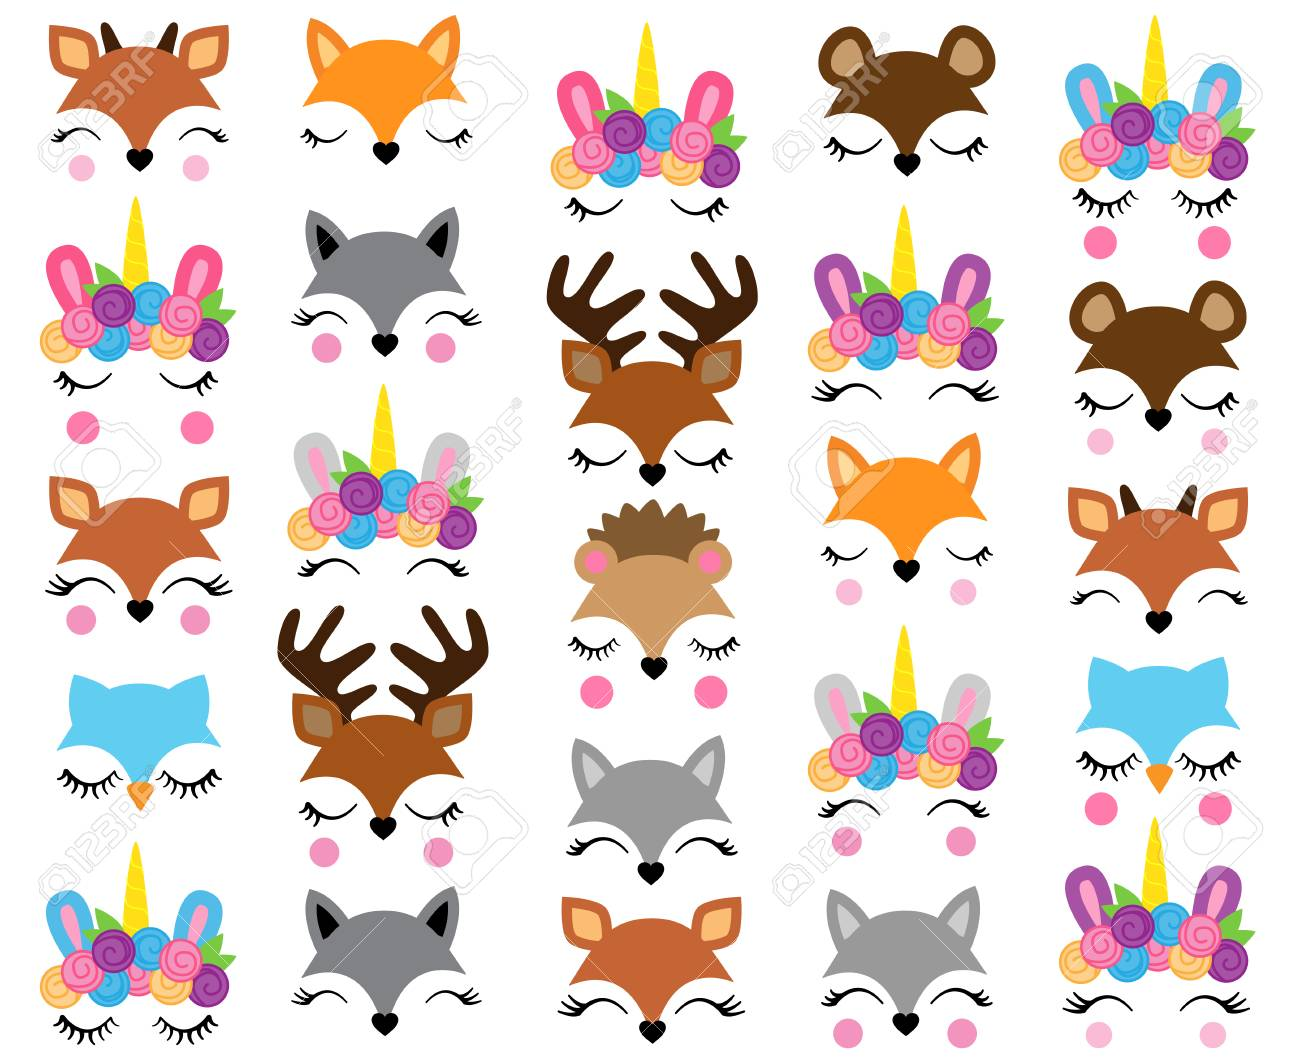 Mix and Match Animal Faces - Create Whimsical Animal Faces by Mix and Matching Heads, Eyes and Accessories - 103006962